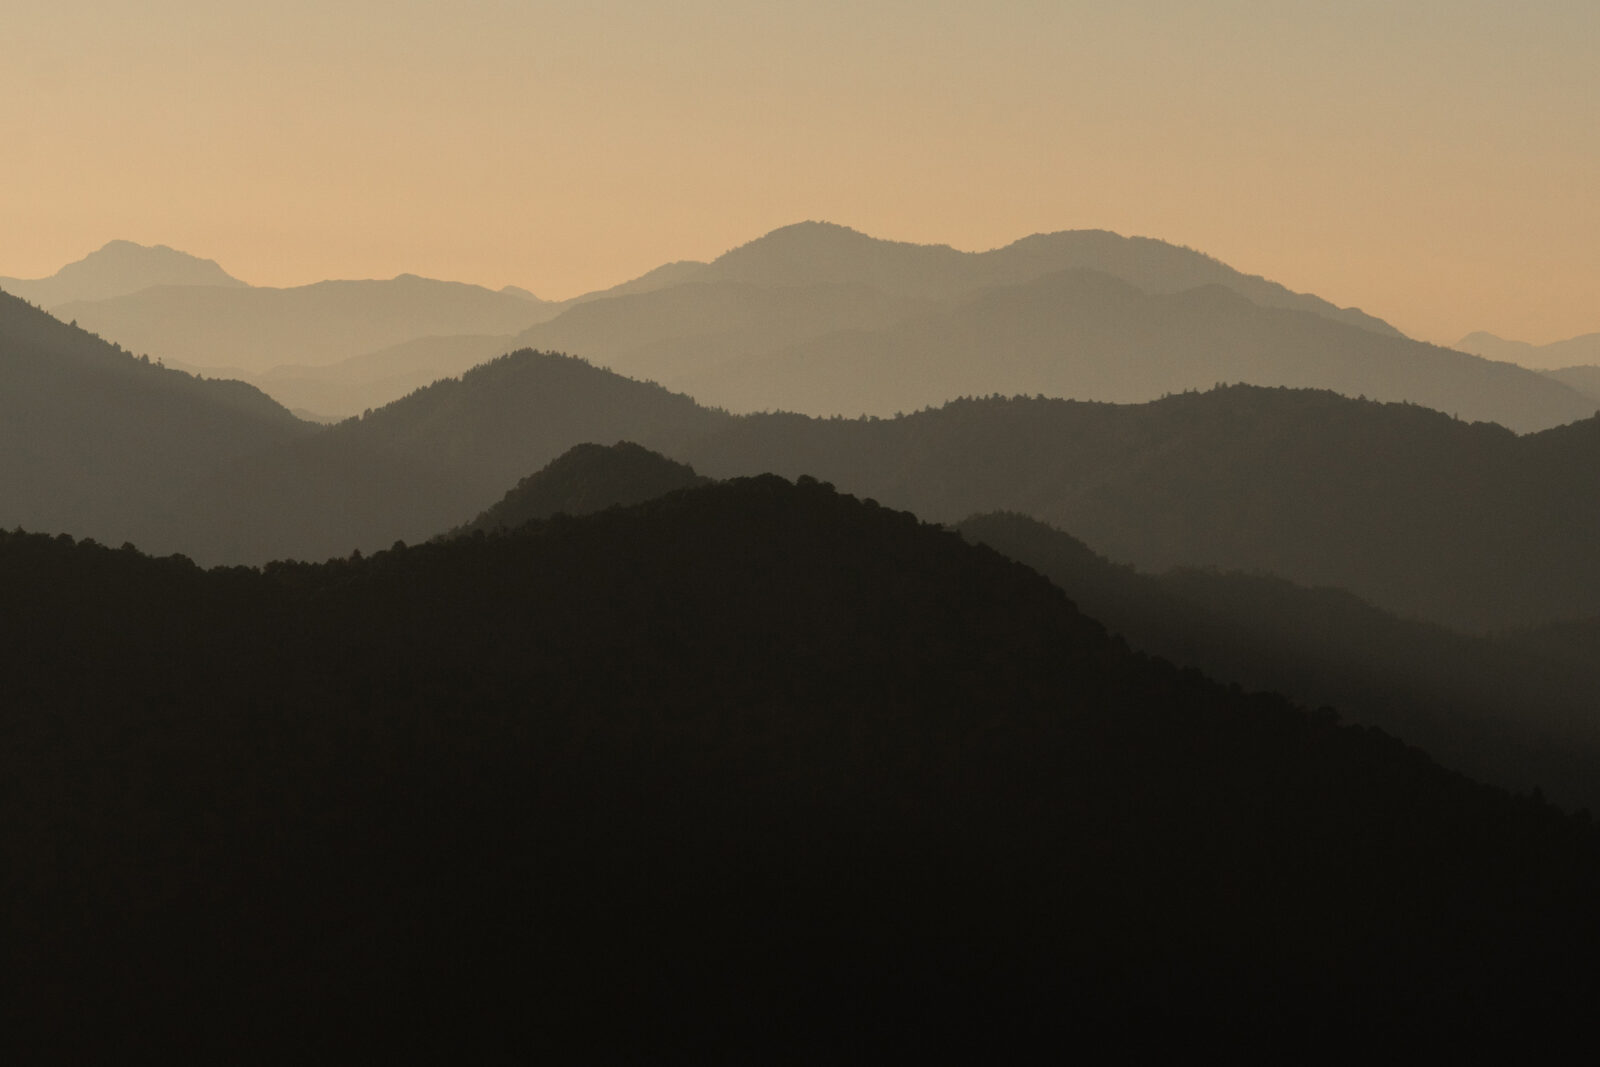 A gradient of earth-toned hilltop silohouettes